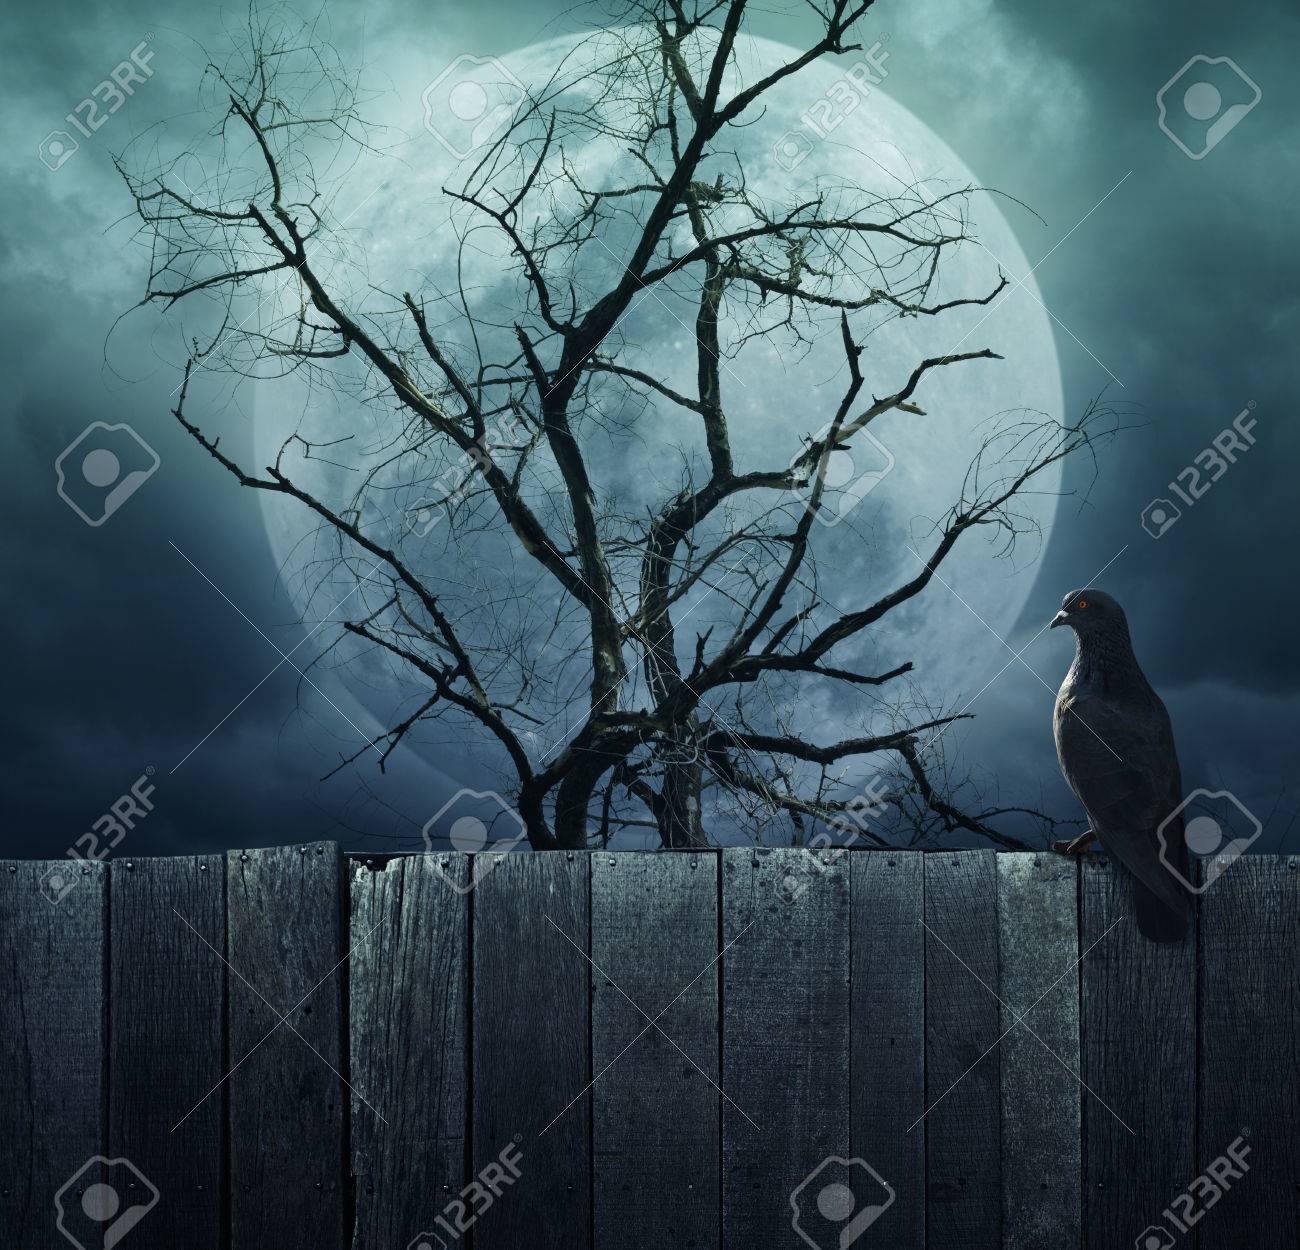 bird stand on wood fence on spooky tree with moon background